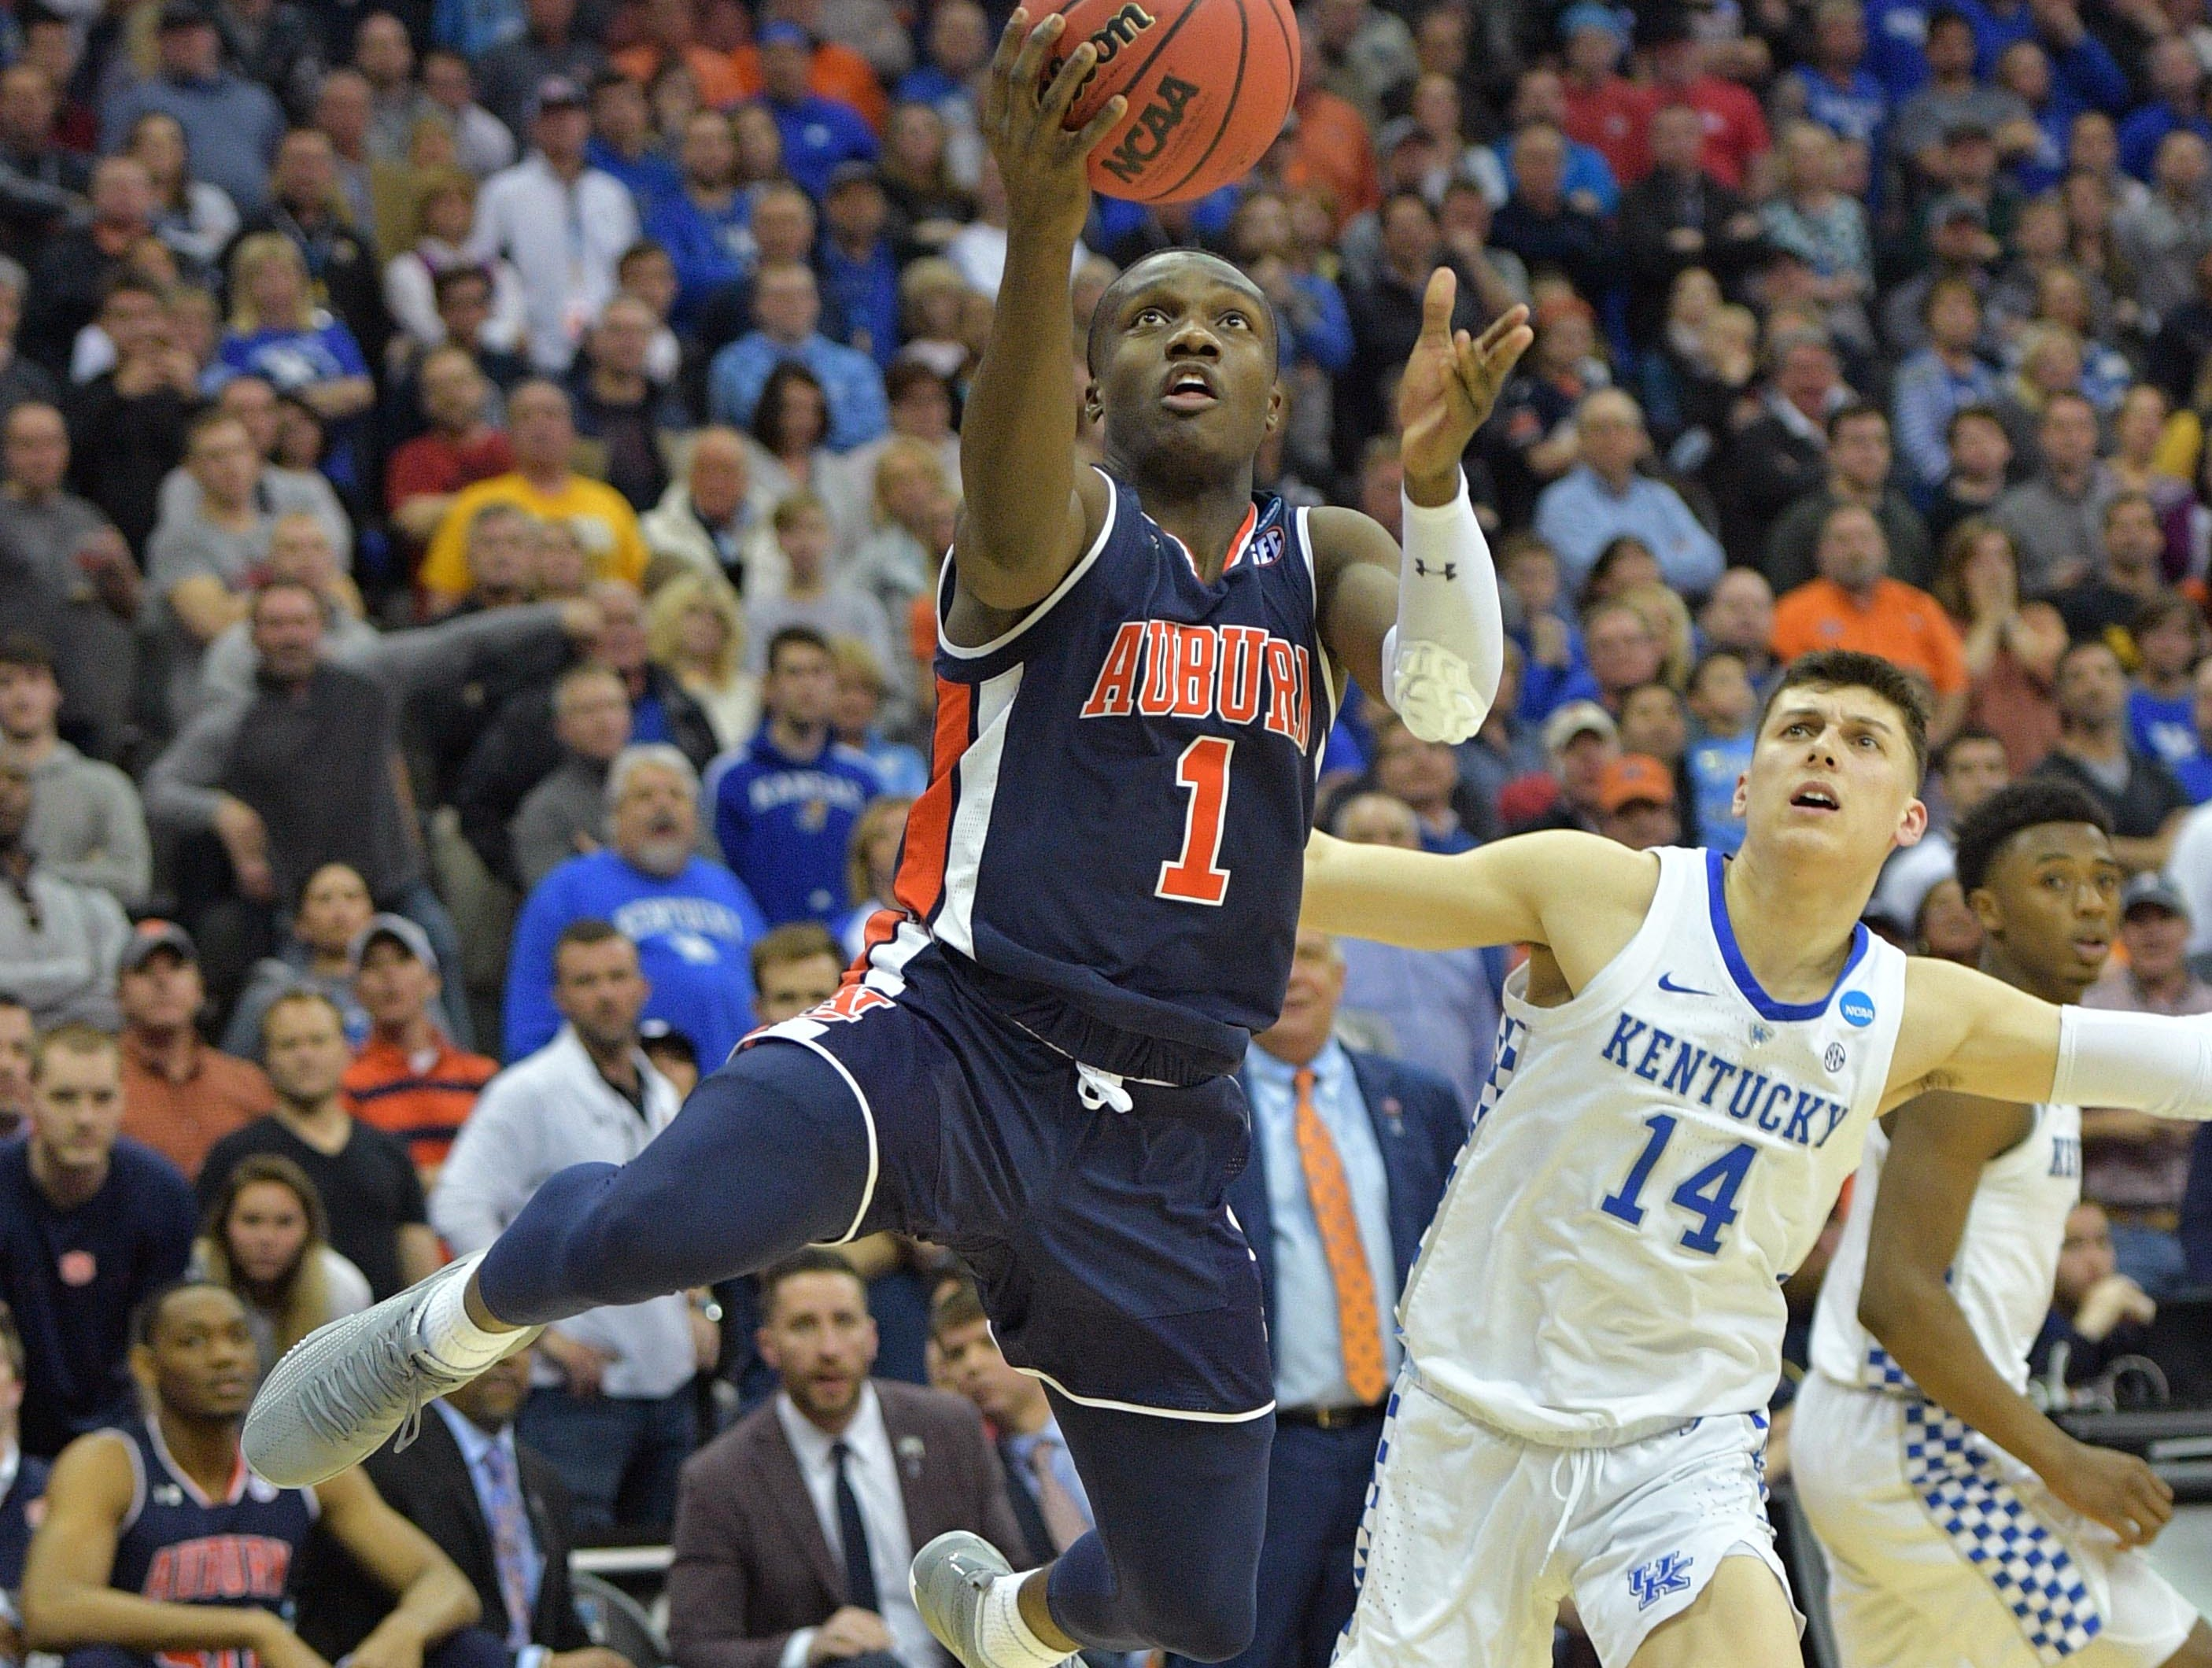 Mar 31, 2019; Kansas City, MO, United States; Auburn Tigers guard Jared Harper (1) shoots against Kentucky Wildcats guard Tyler Herro (14) during overtime in the championship game of the midwest regional of the 2019 NCAA Tournament at Sprint Center. Mandatory Credit: Denny Medley-USA TODAY Sports